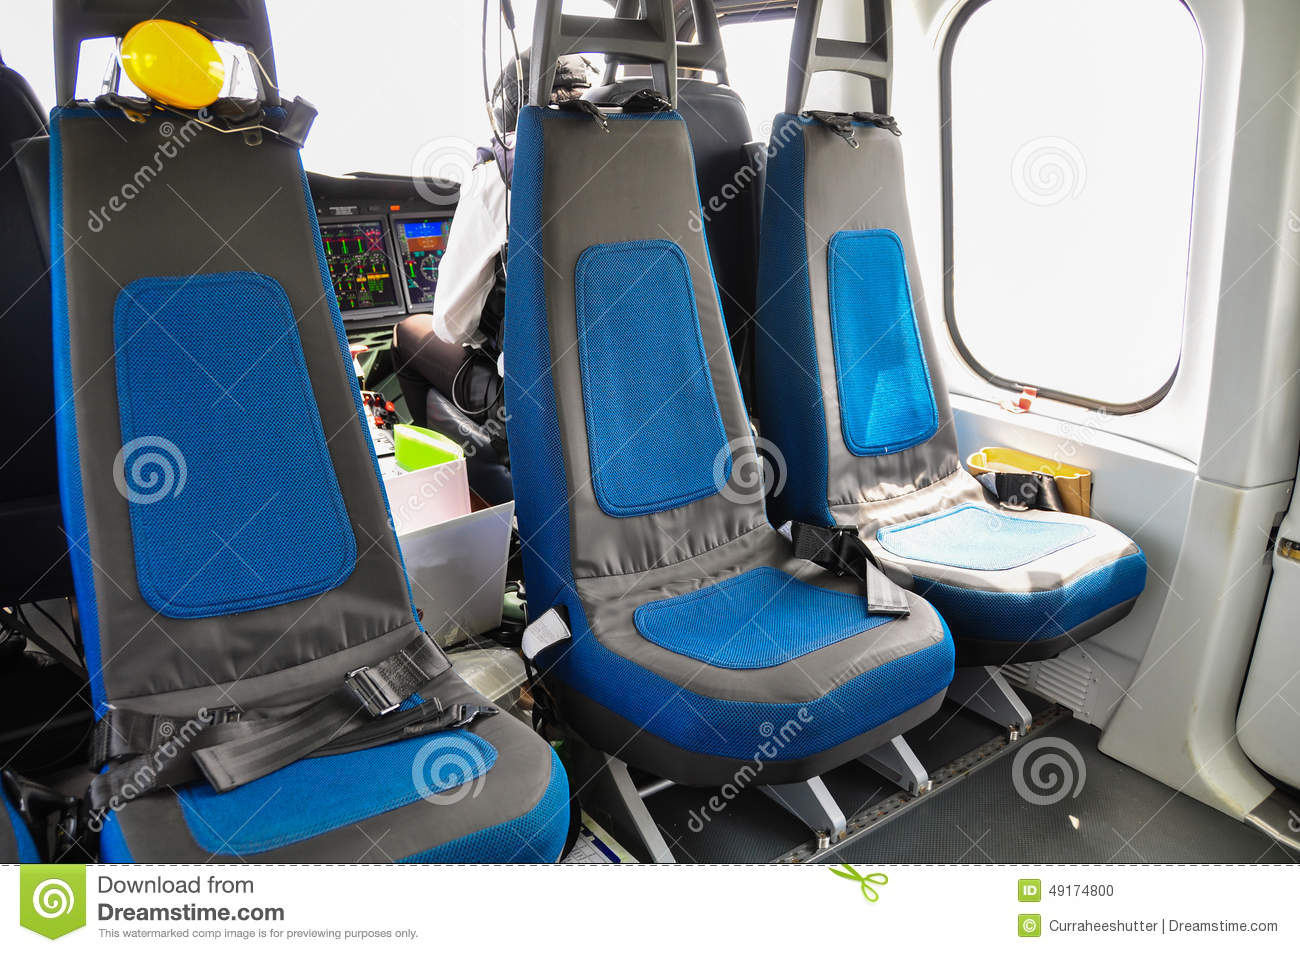 helicopter interior and seat for passenger seat and